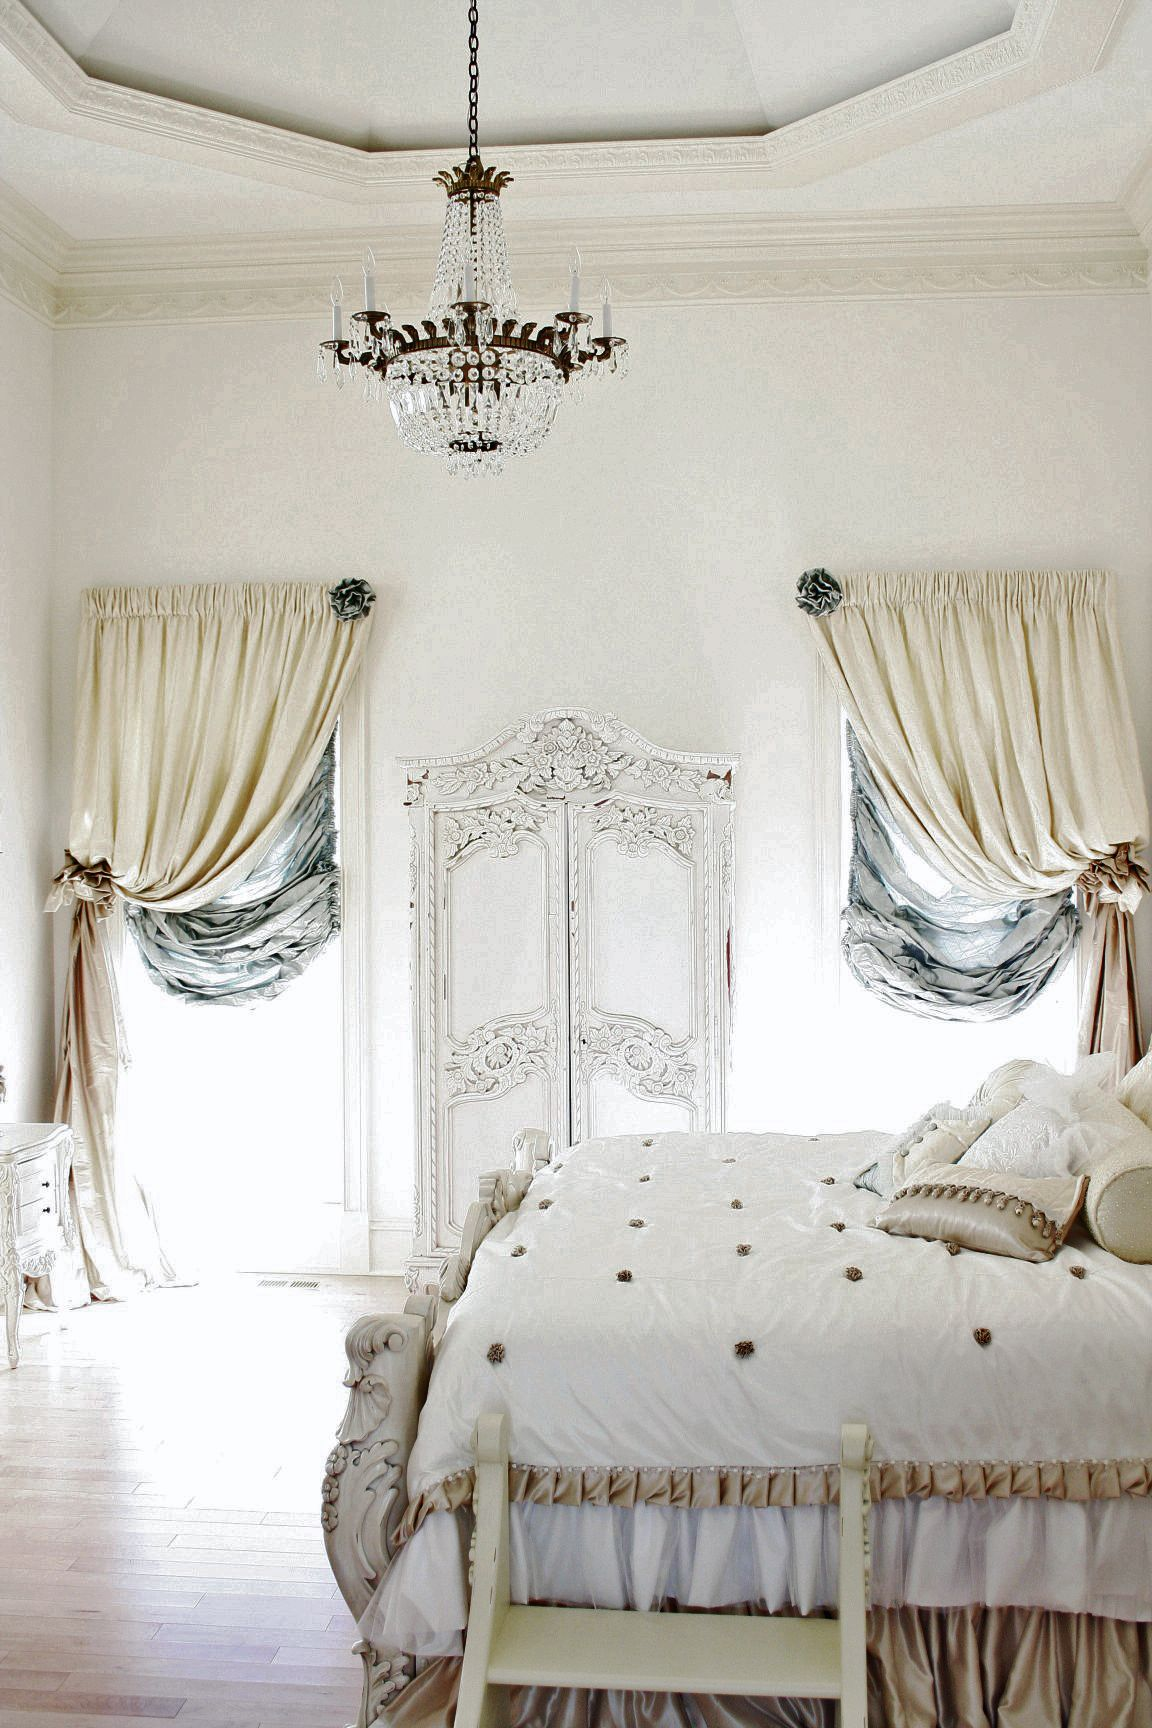 an antique inspired Parisian bedroom in neutrals and soft touches of blue, with sophisticated furniture and chic draperies